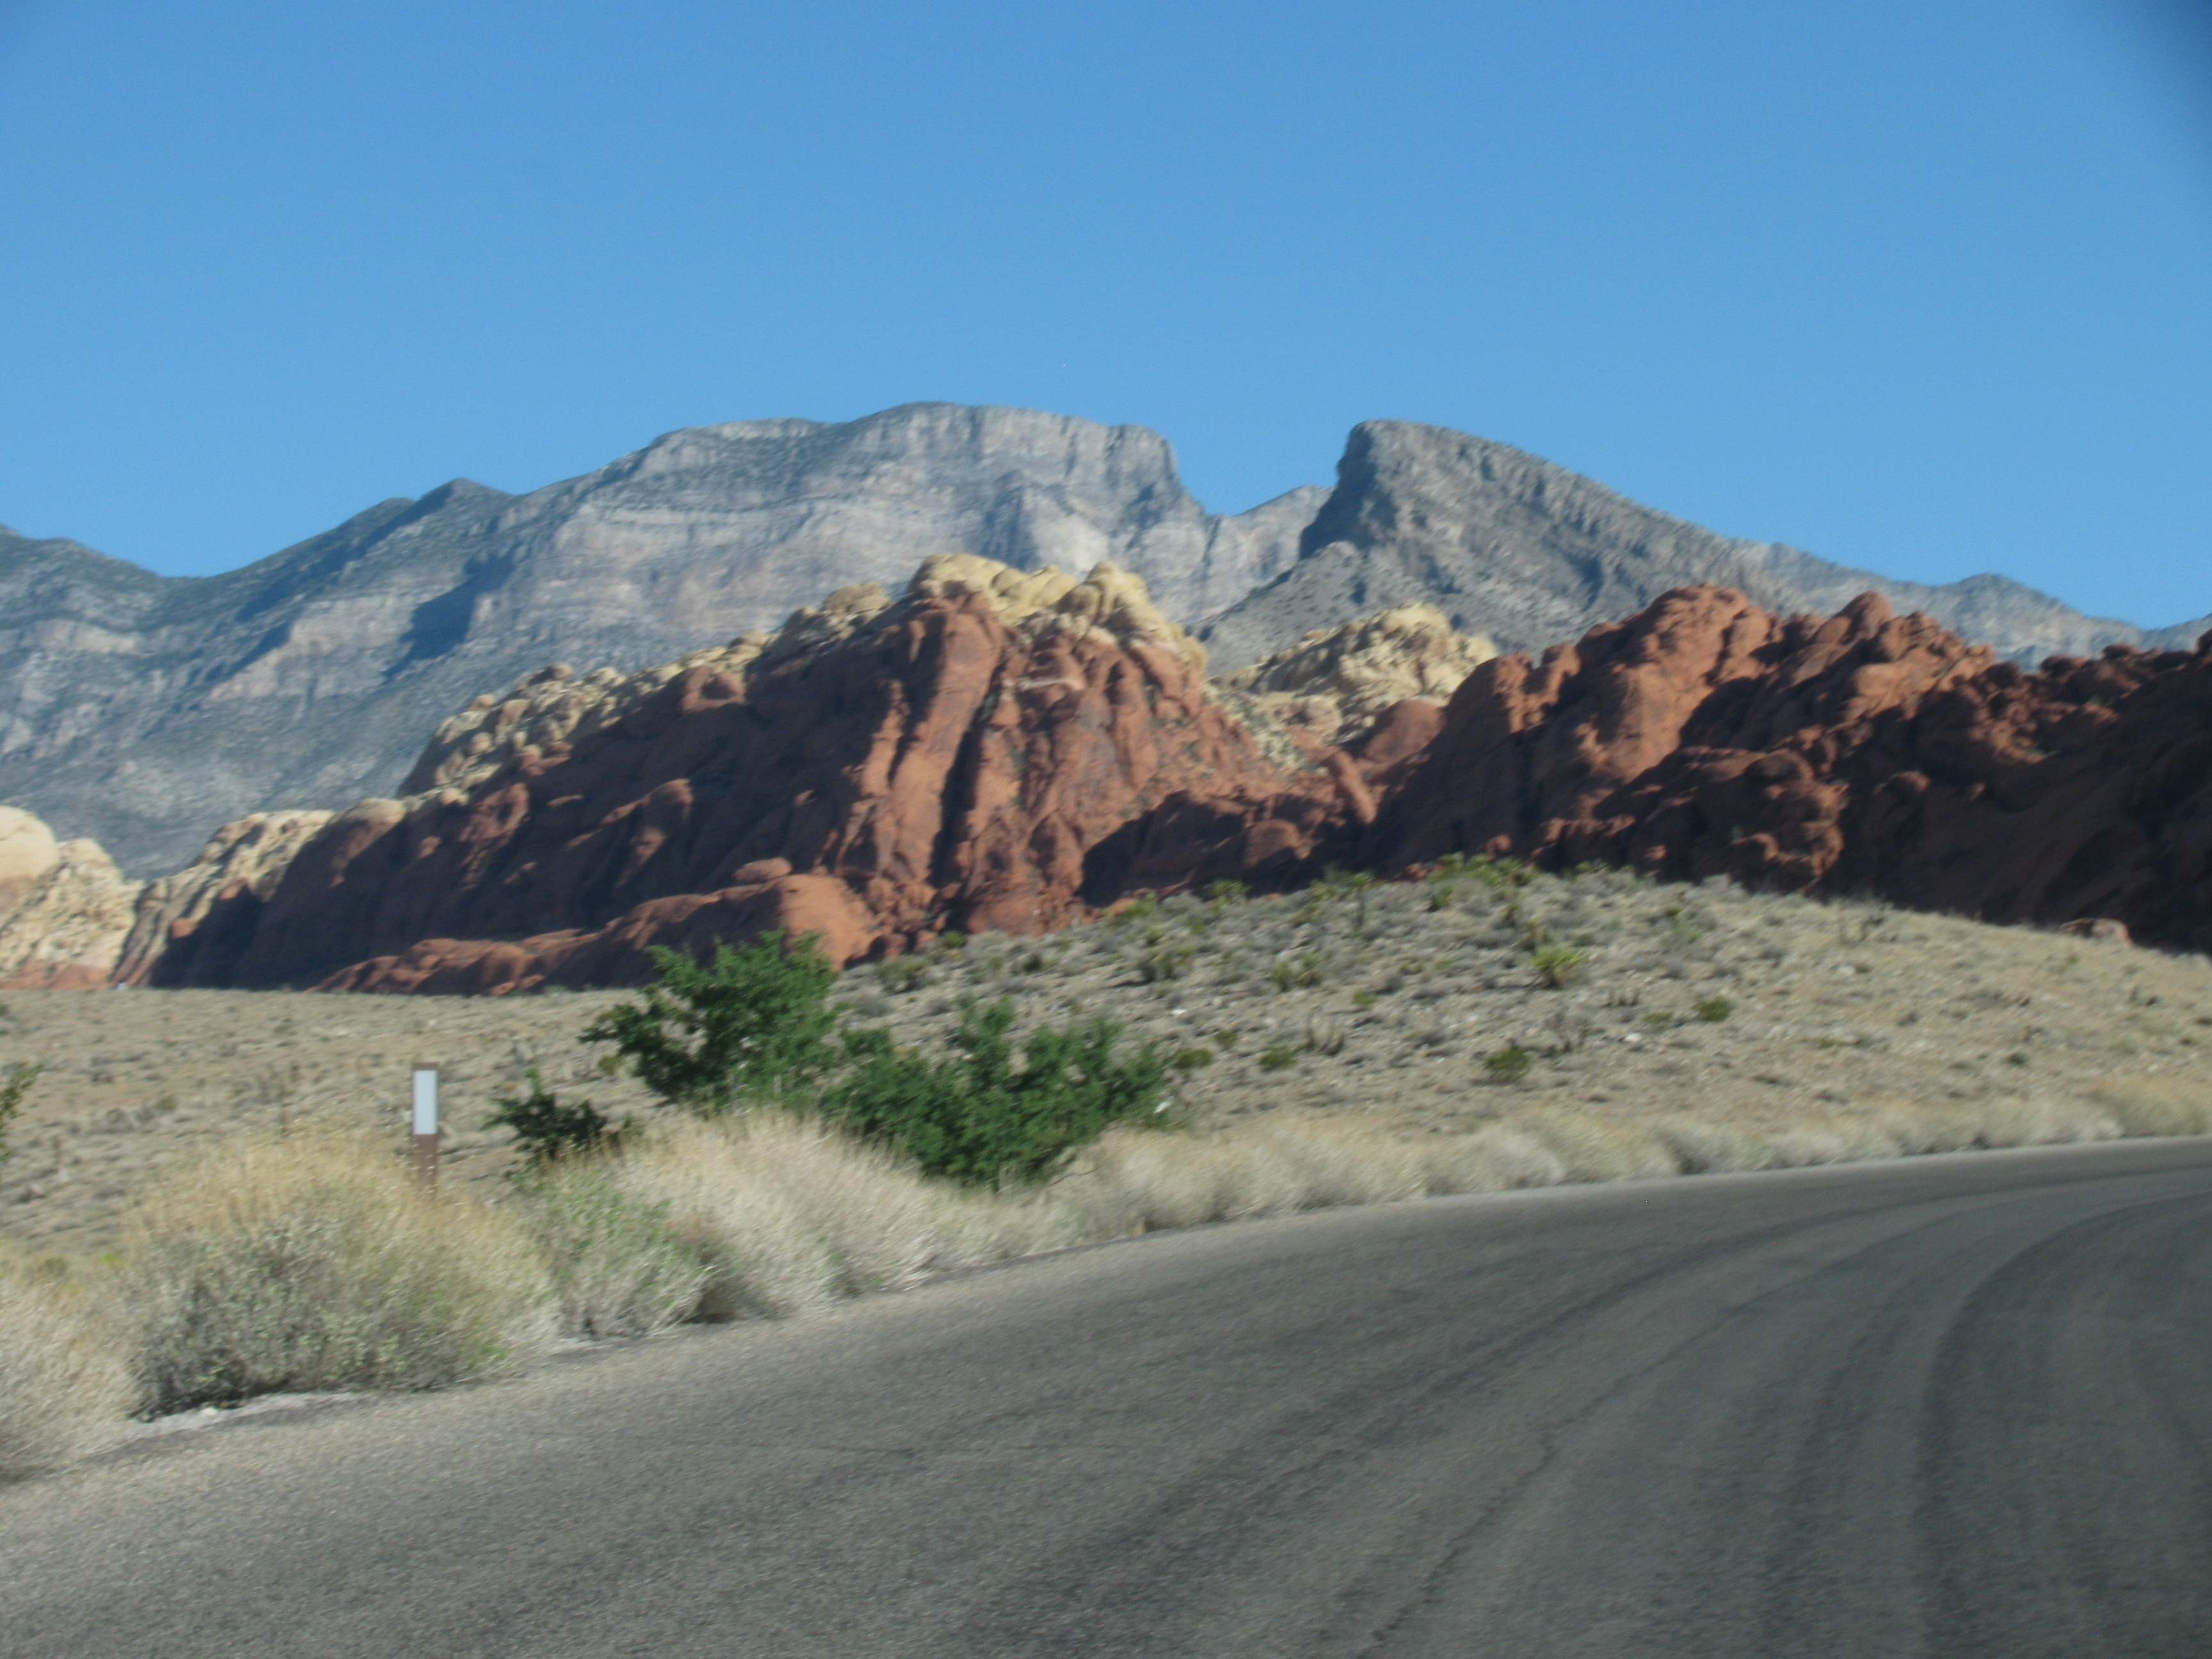 Red Rock Canyon & Blue man group